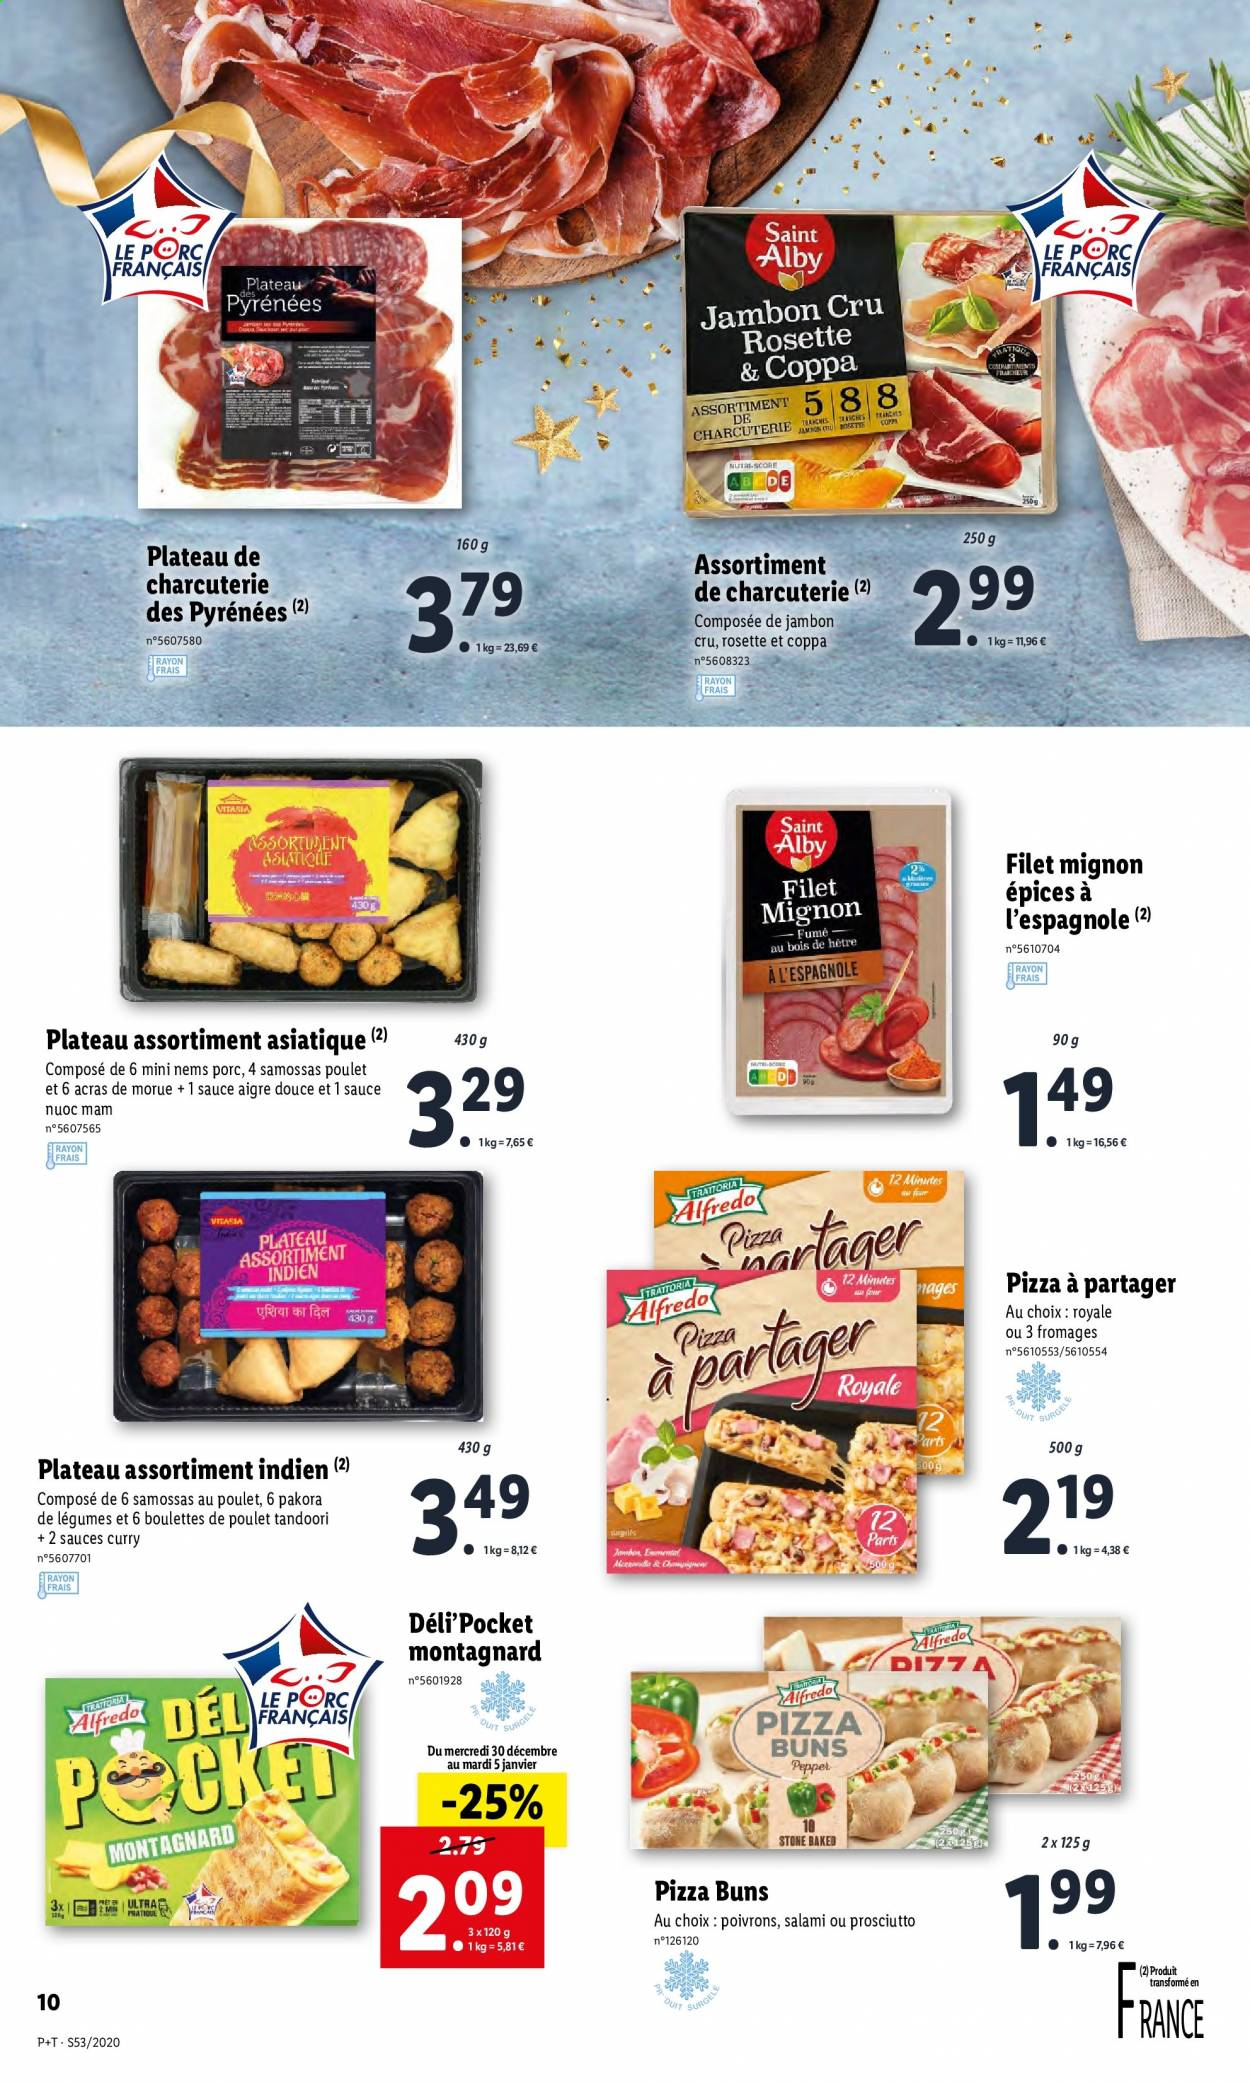 Catalogue Lidl - 30.12.2020 - 05.01.2021. Page 10.